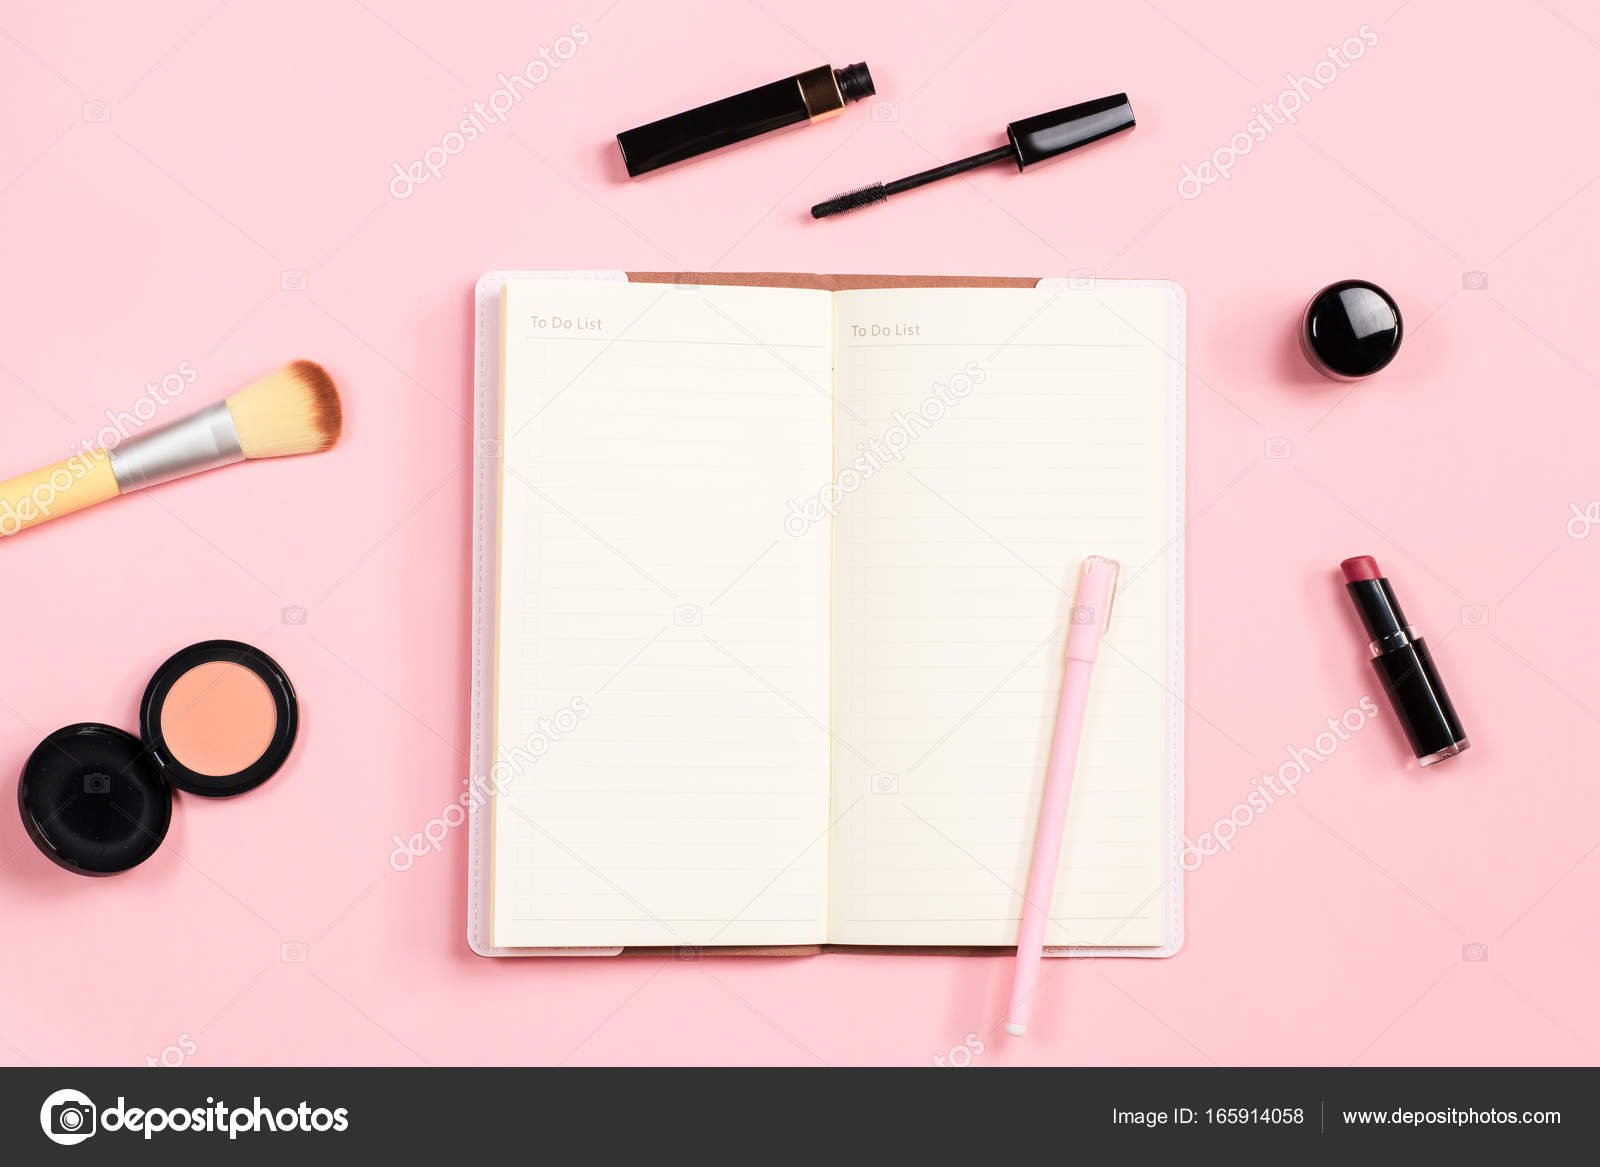 Beauty blogger objects flat lay  Beauty products and stylish